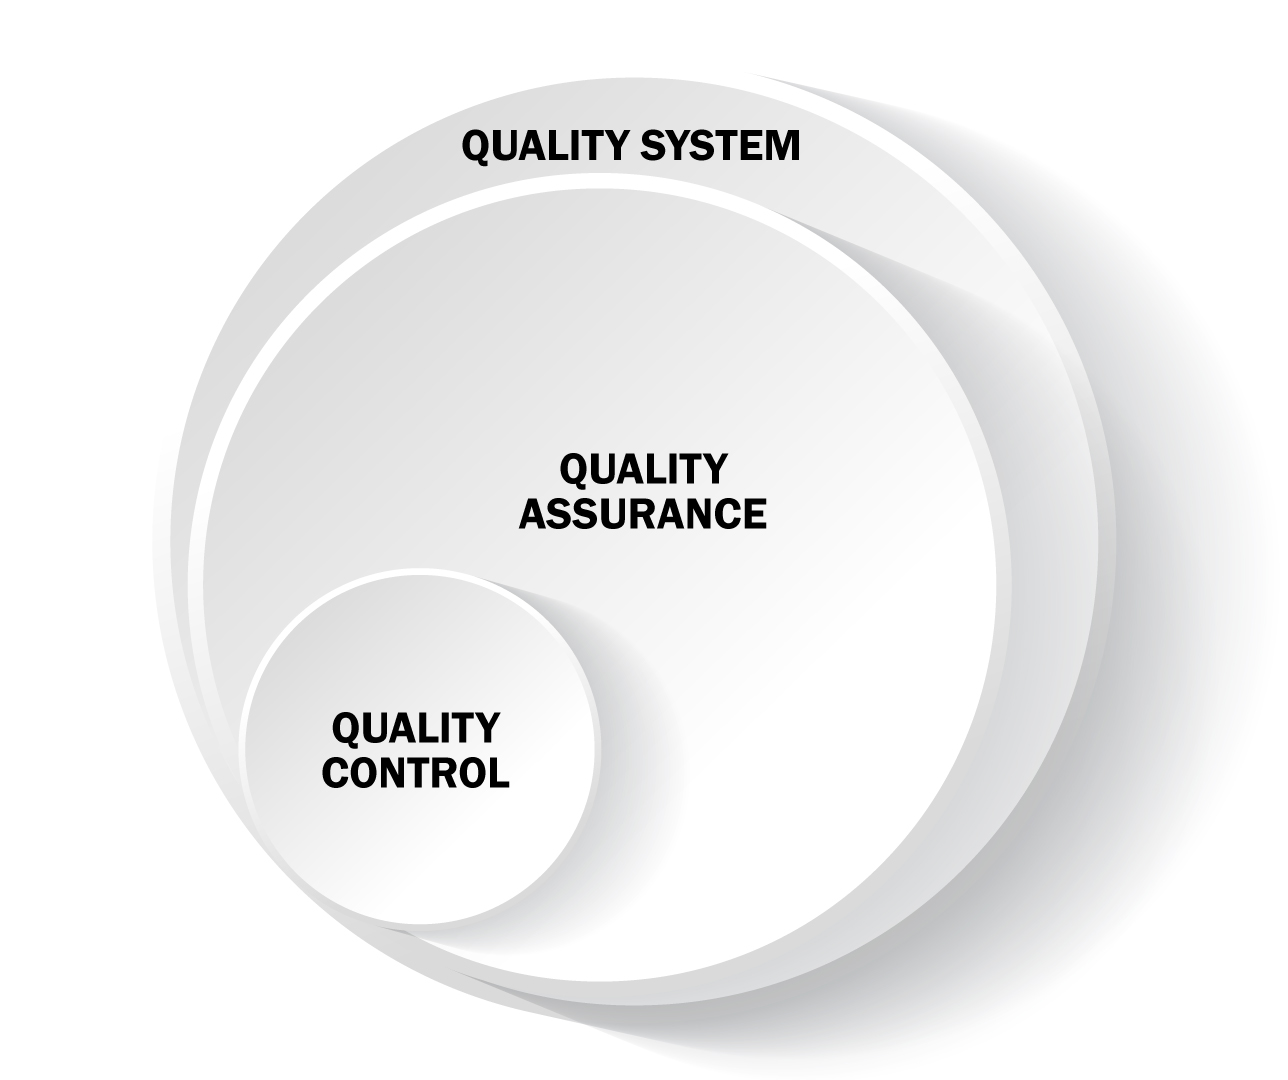 Differences between the three concept, Quality control, quality assurance and quality systems